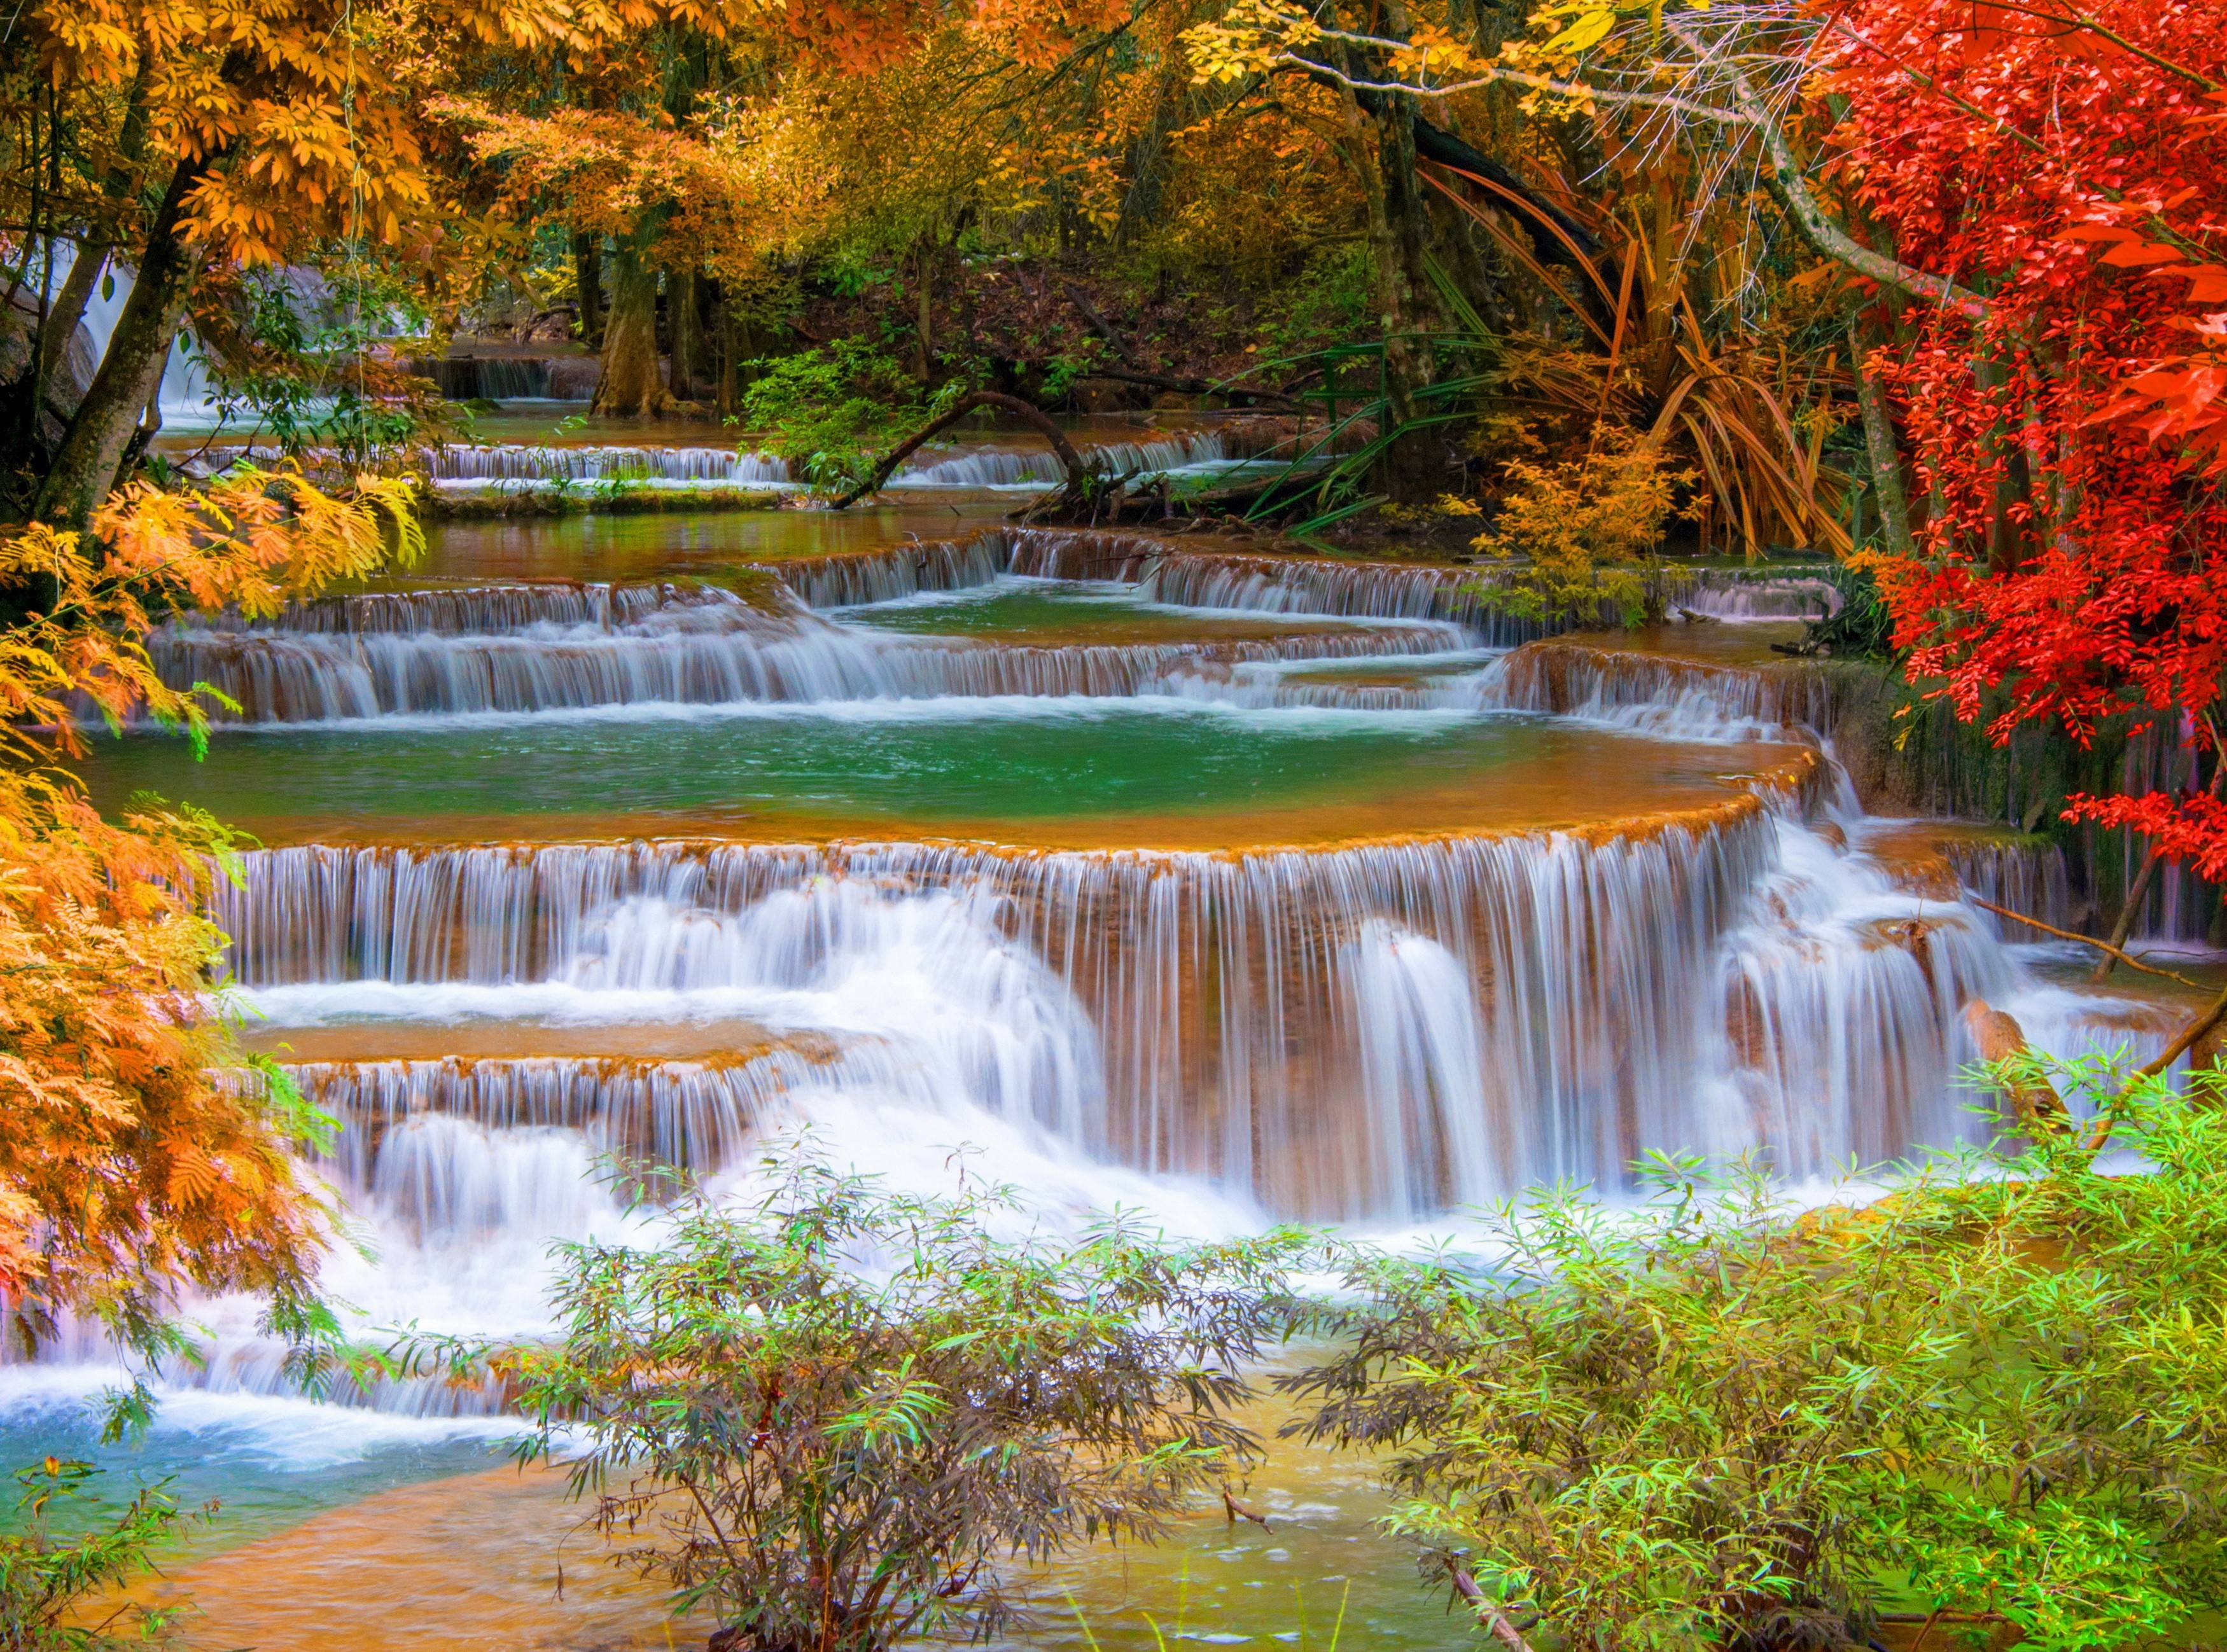 Fall Wallpaper Iphone 4 The Seasons Full Hd Wallpaper And Background Image